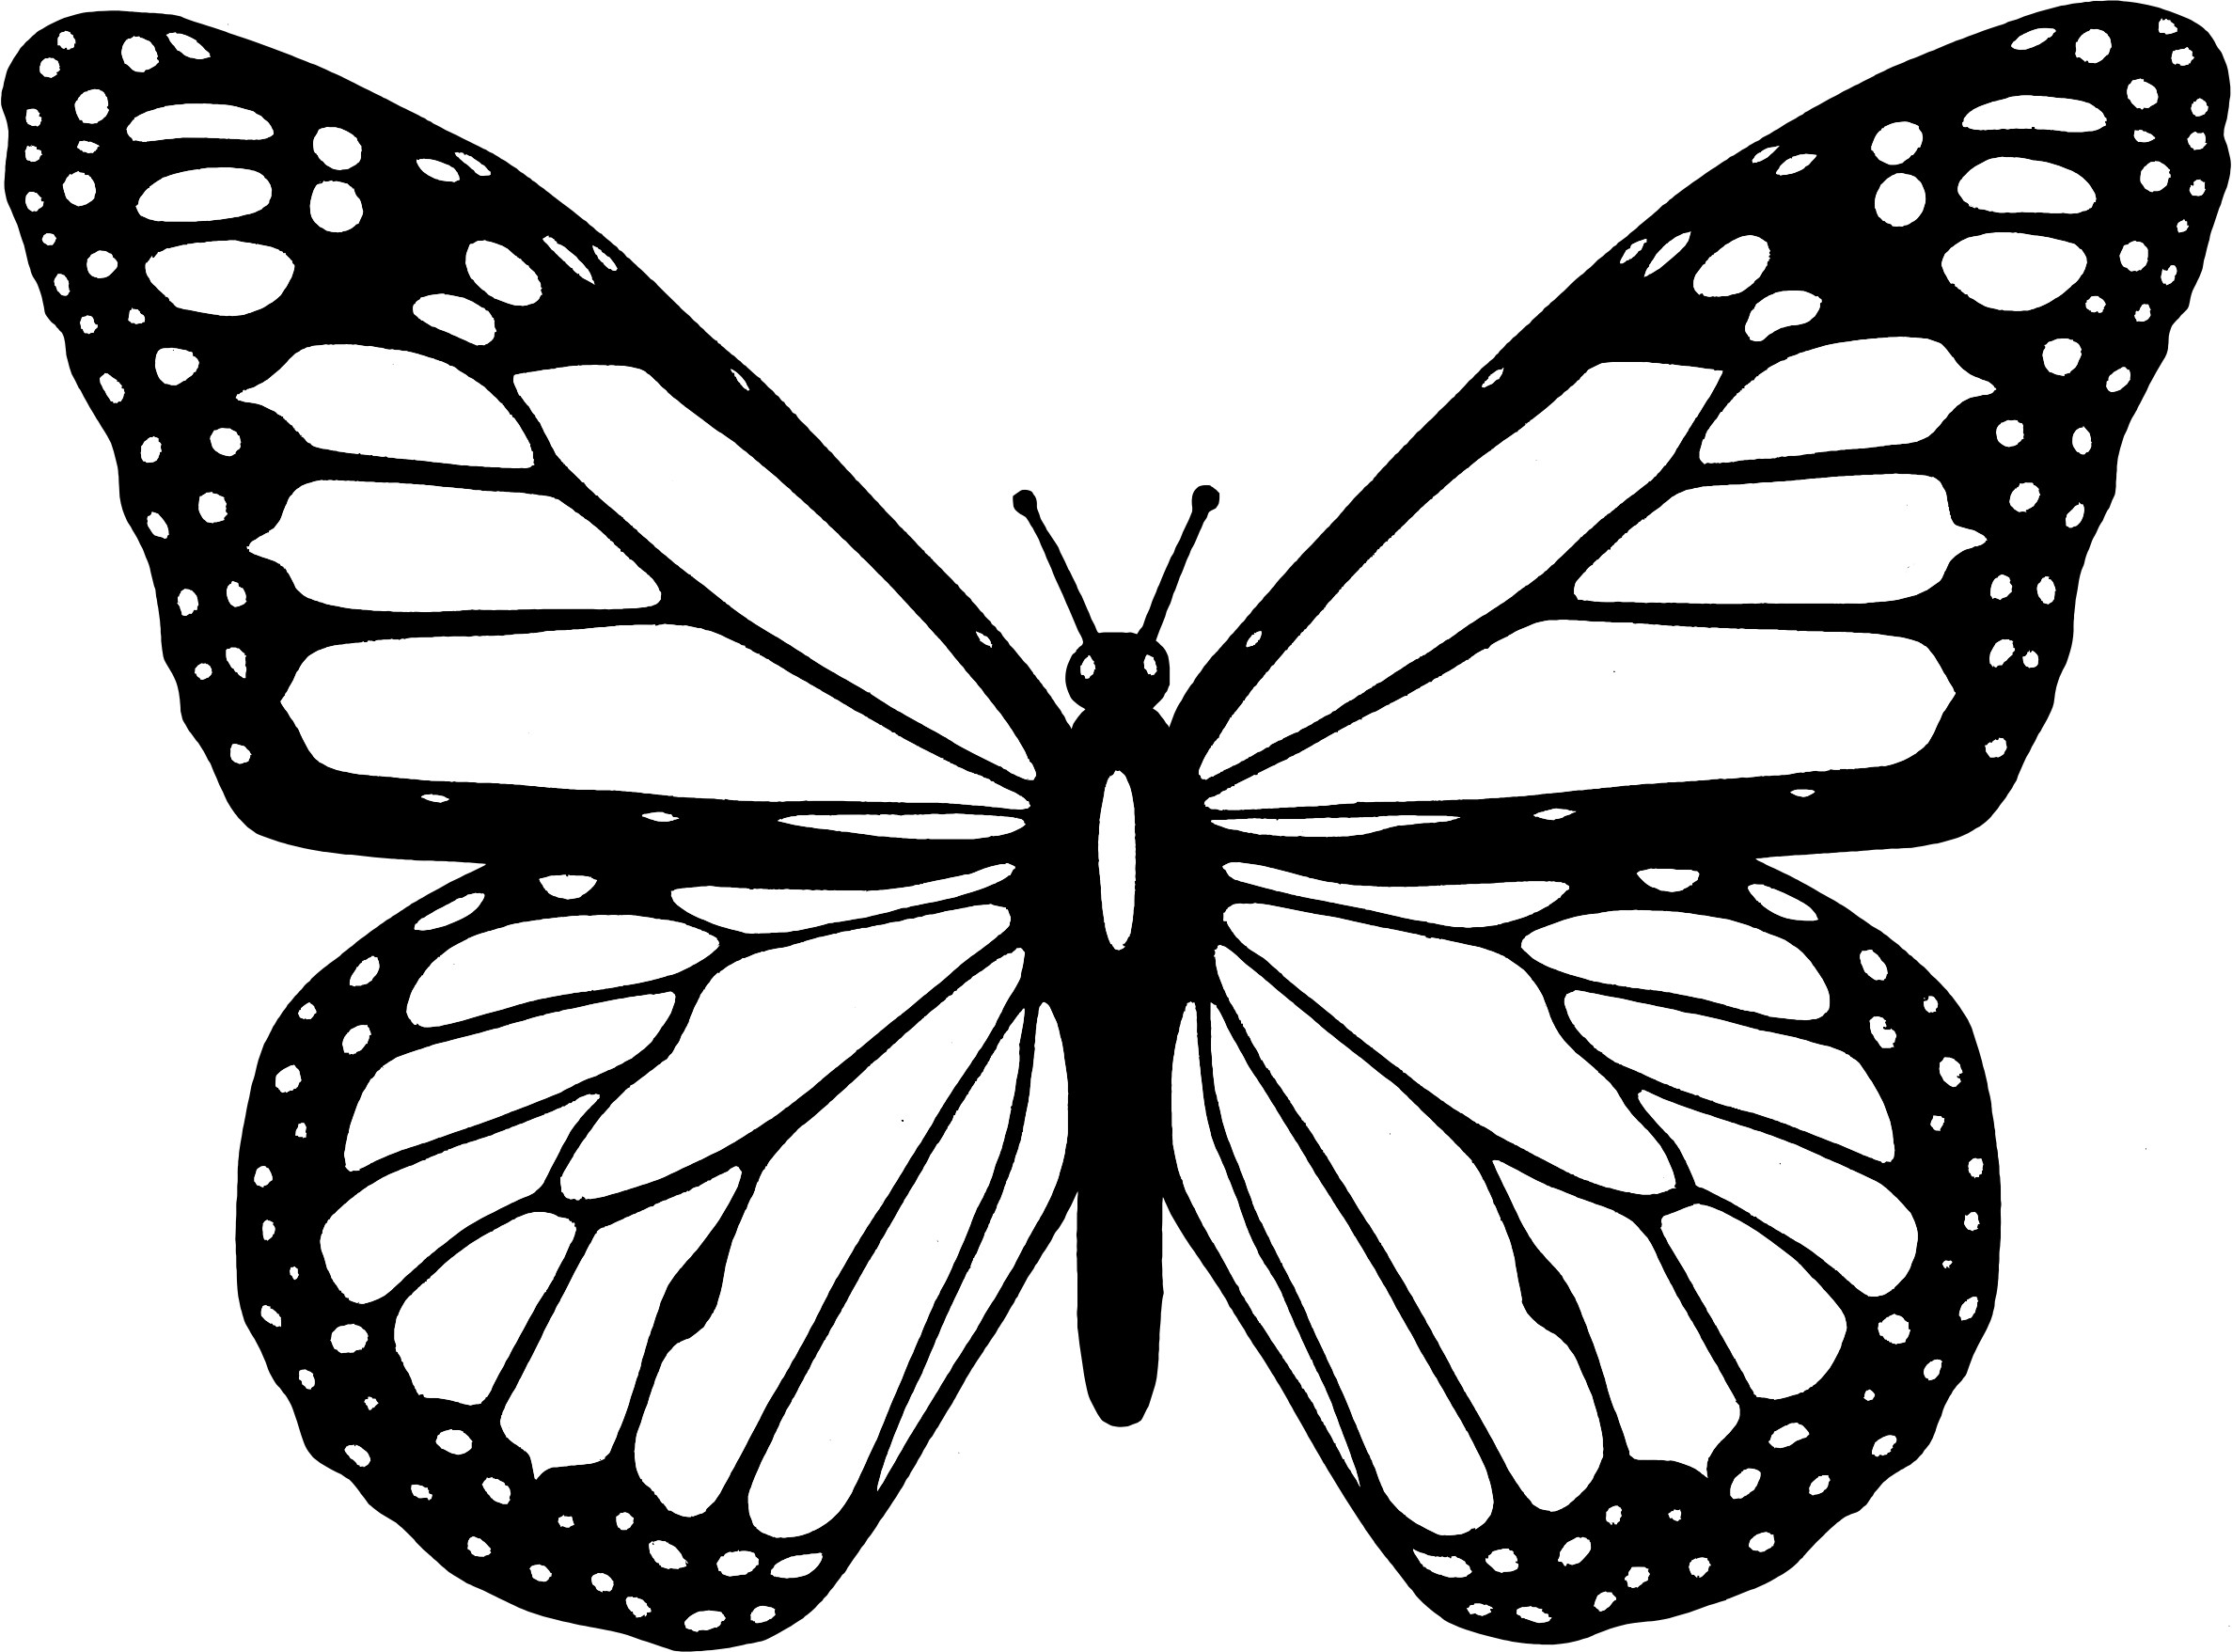 butterfly coloring pages free printable free printable butterfly coloring pages for kids pages coloring printable butterfly free